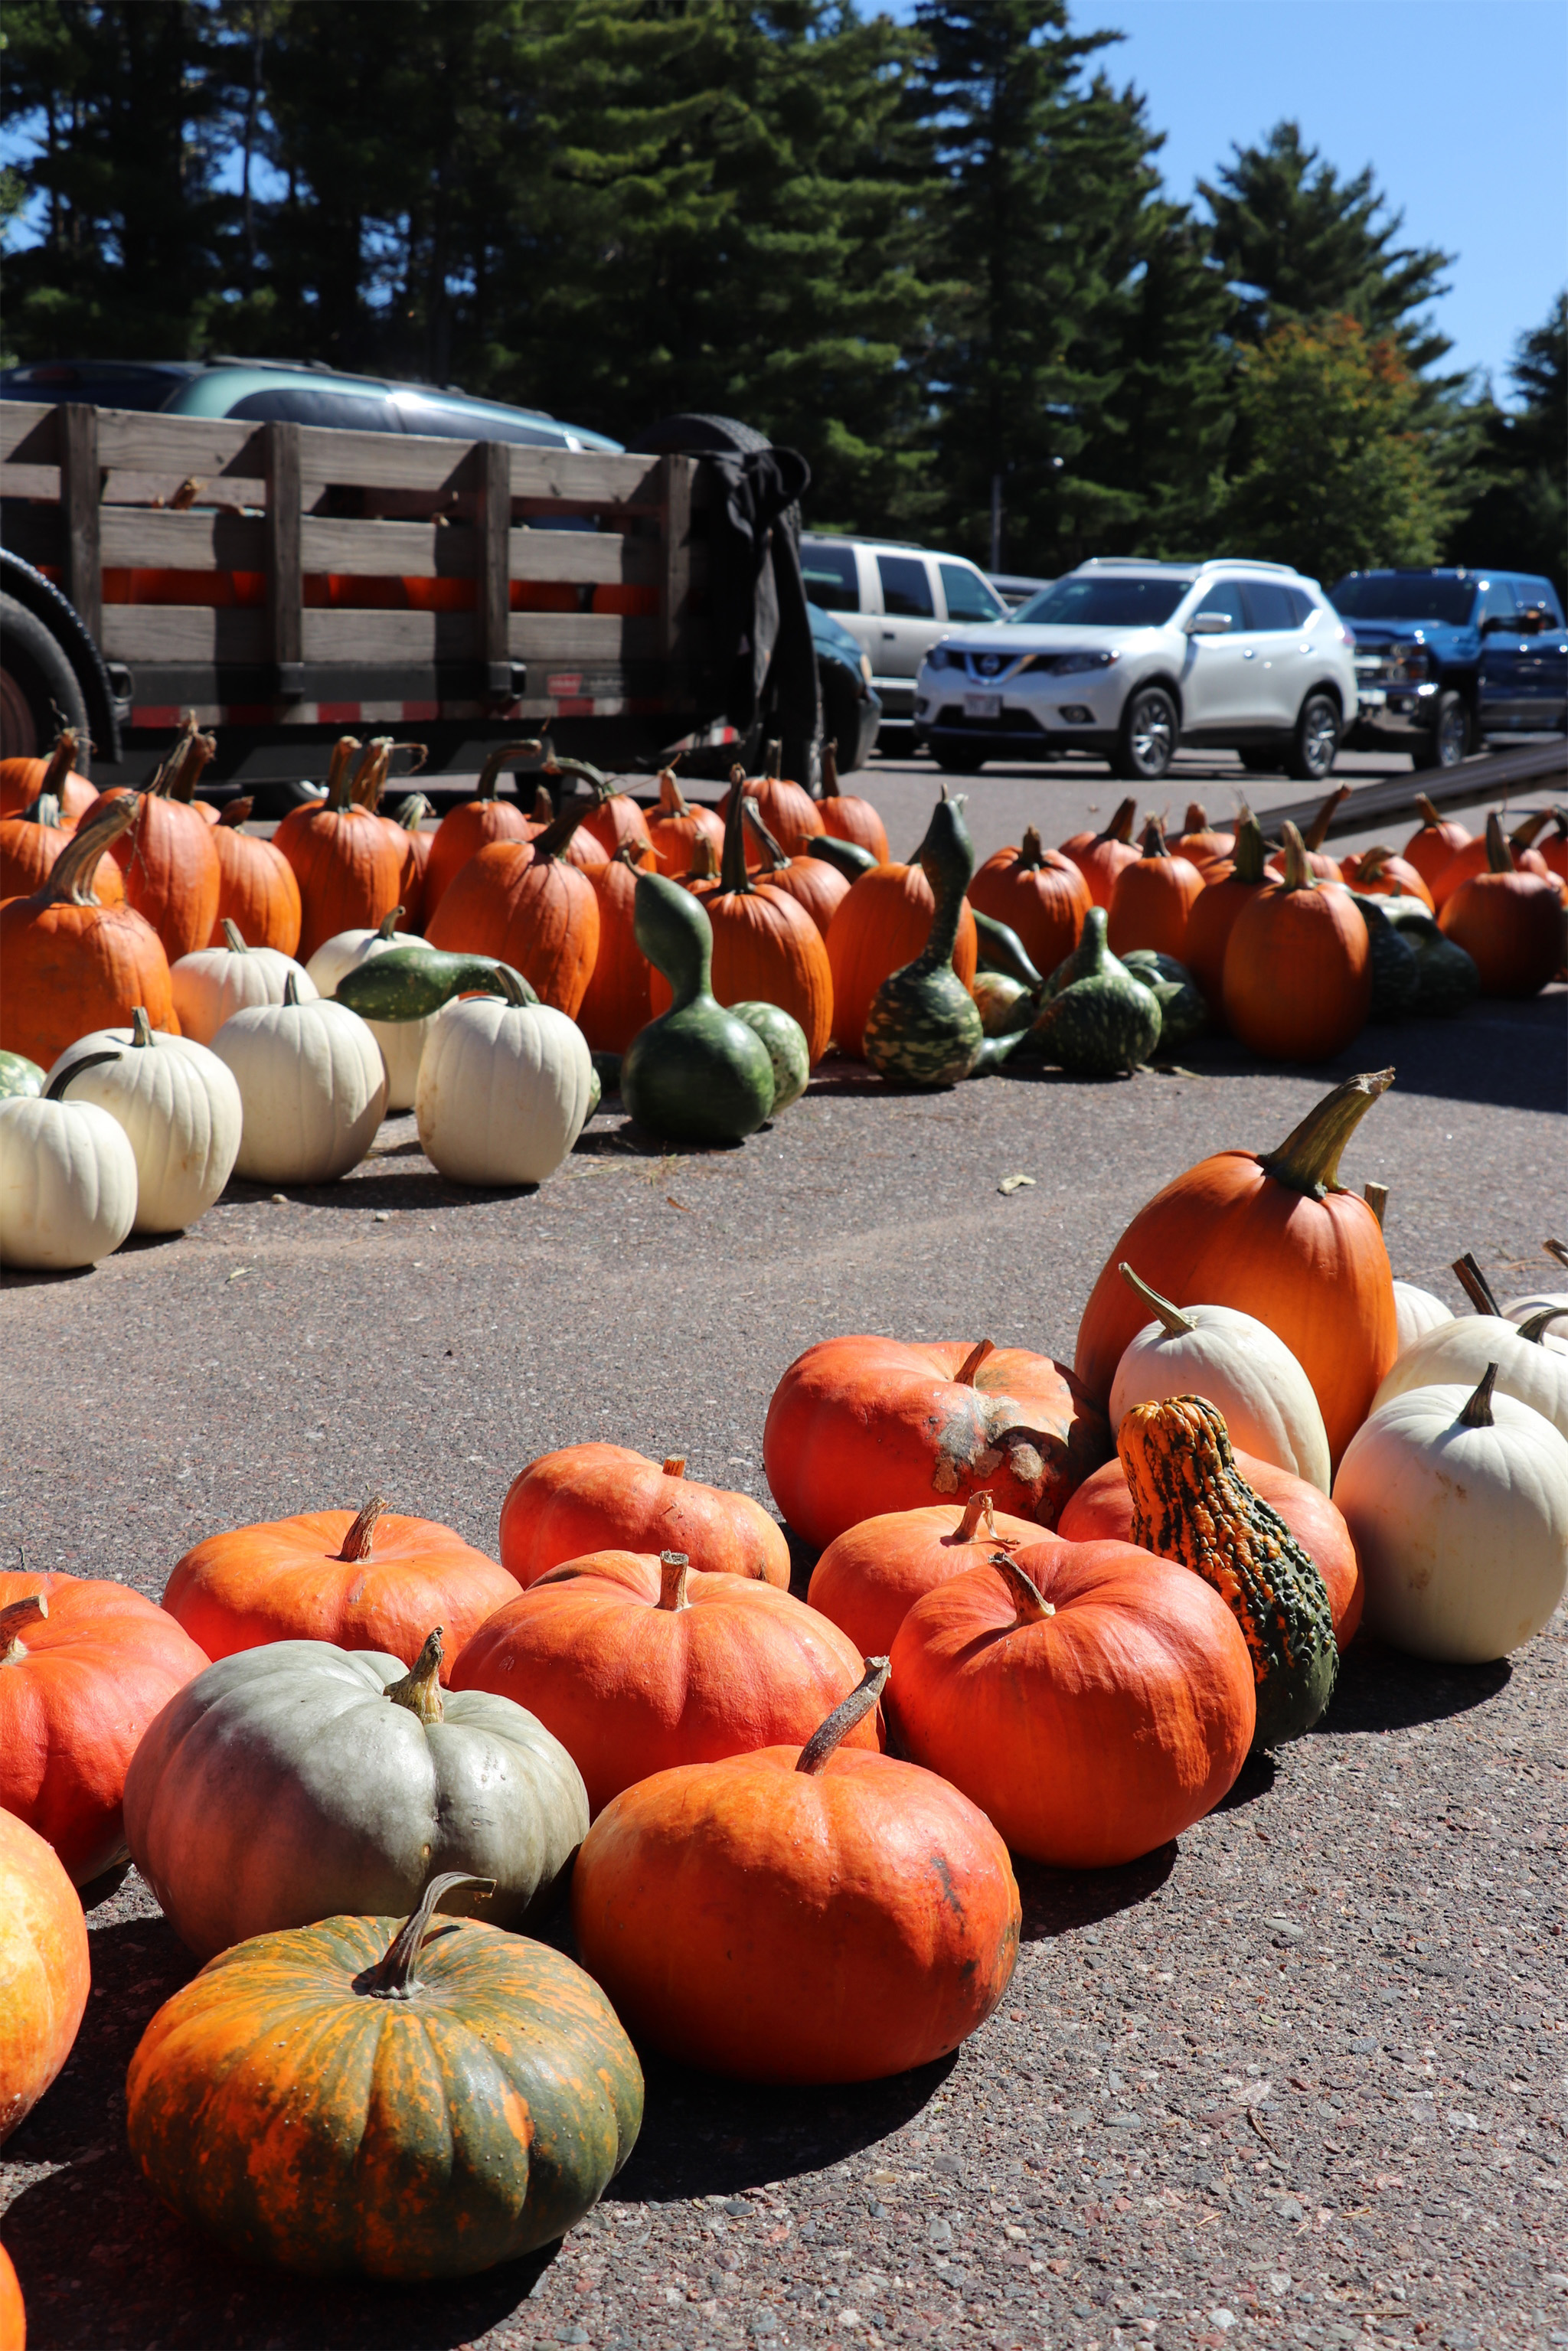 Bright orange pumpkins line the parking lot at Colorama in St. Germain. Kim Johnson photo